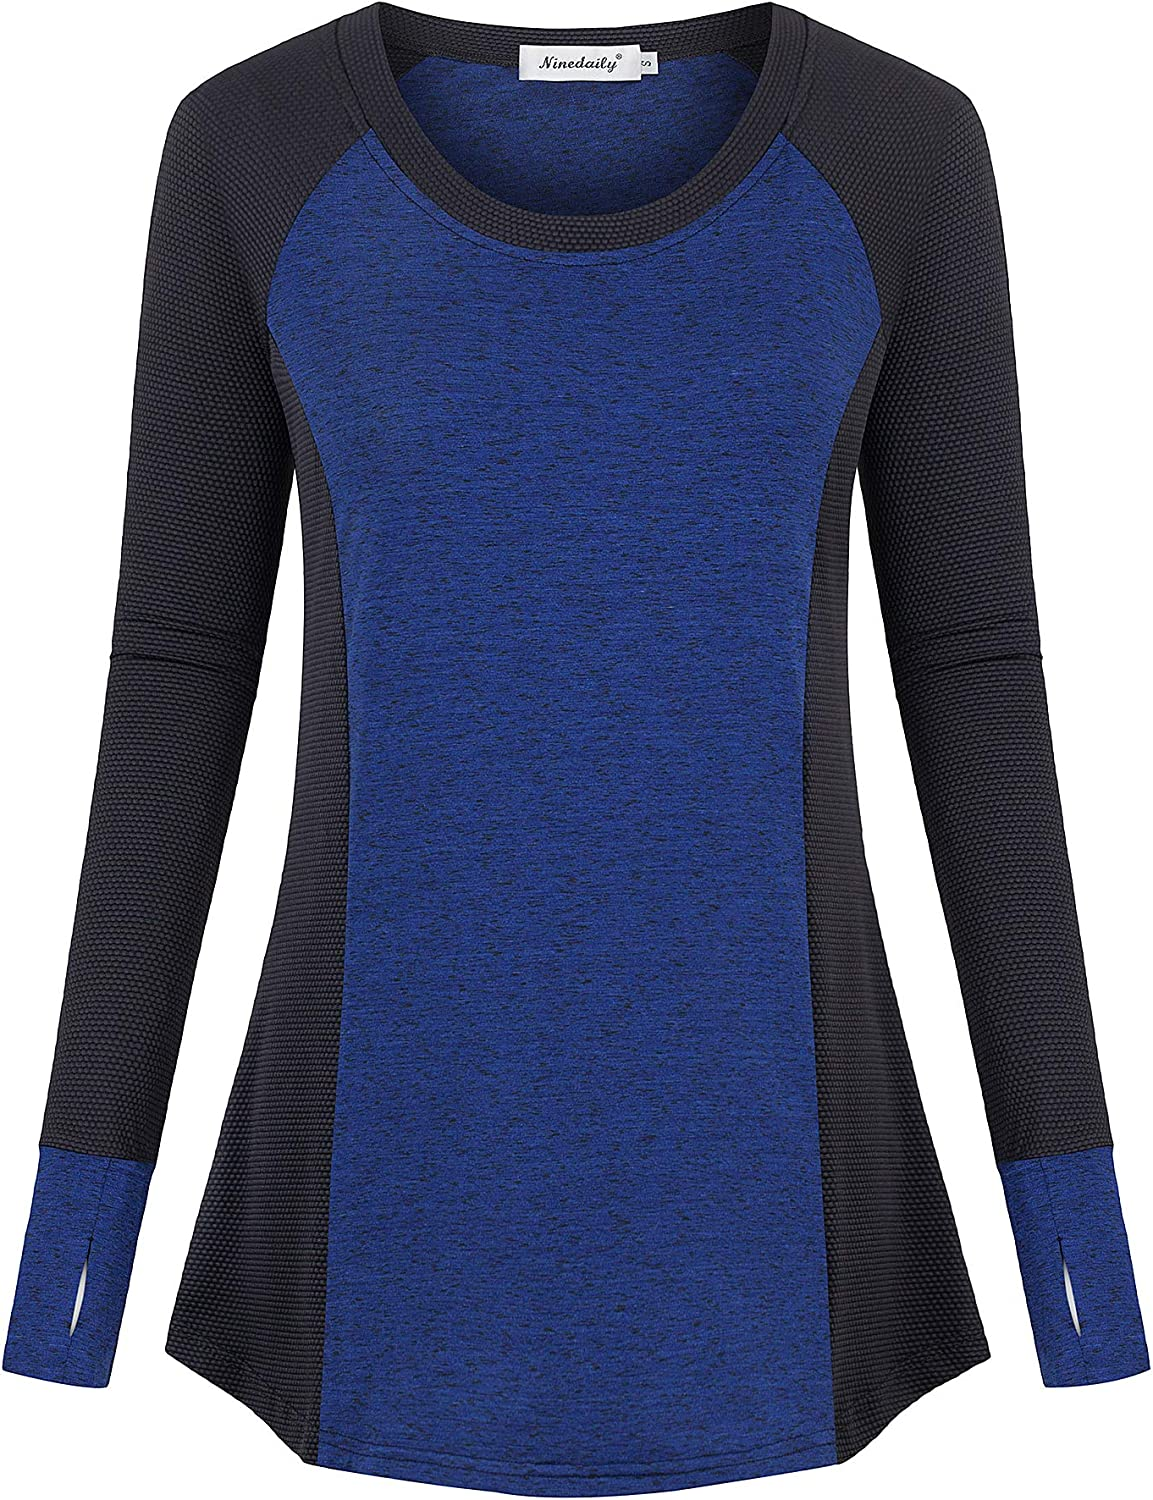 Ninedaily Women's Long Sleeve Workout Shirt Winter Fitness Activewear Casual Top: Clothing